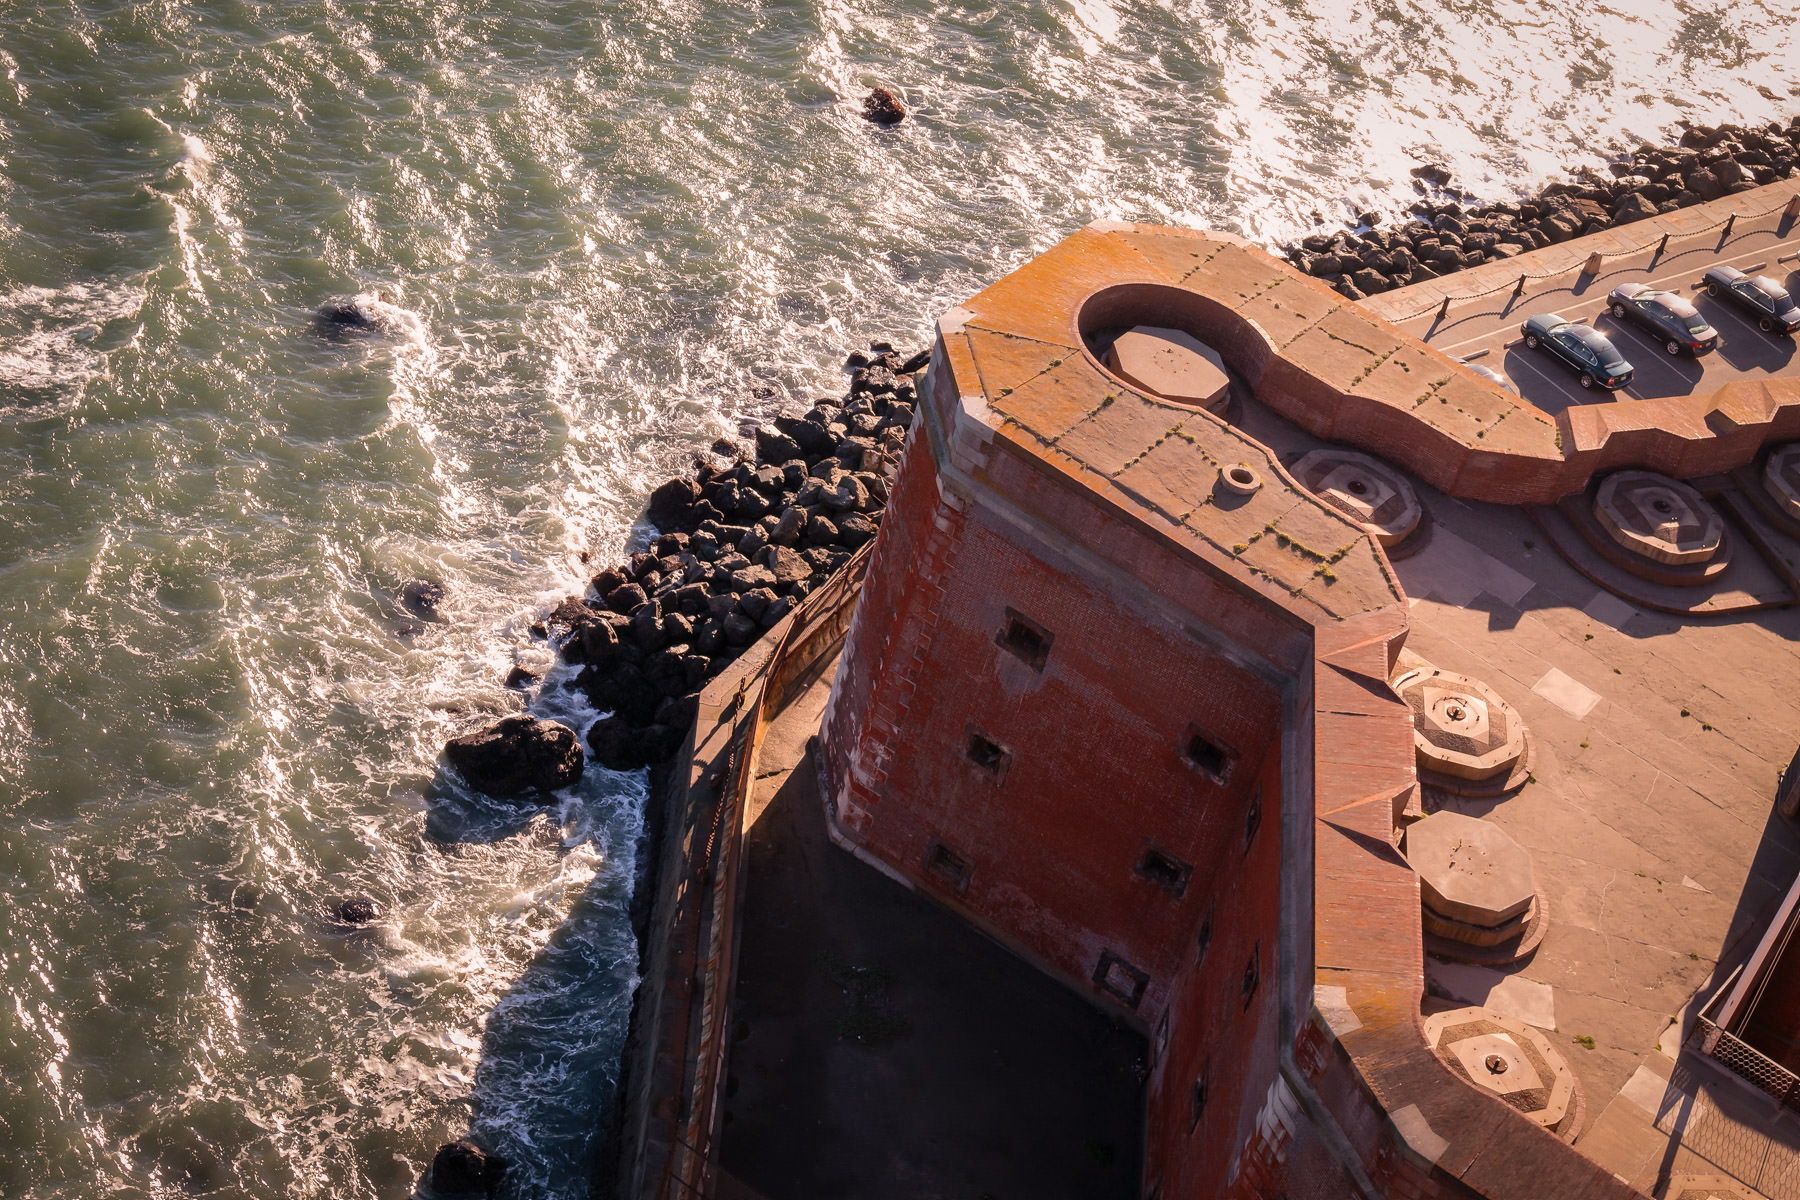 The surf of San Francisco Bay churns around the rocky shoreline at historic Fort Point, as seen from the pedestrian walkway on the Golden Gate Bridge.